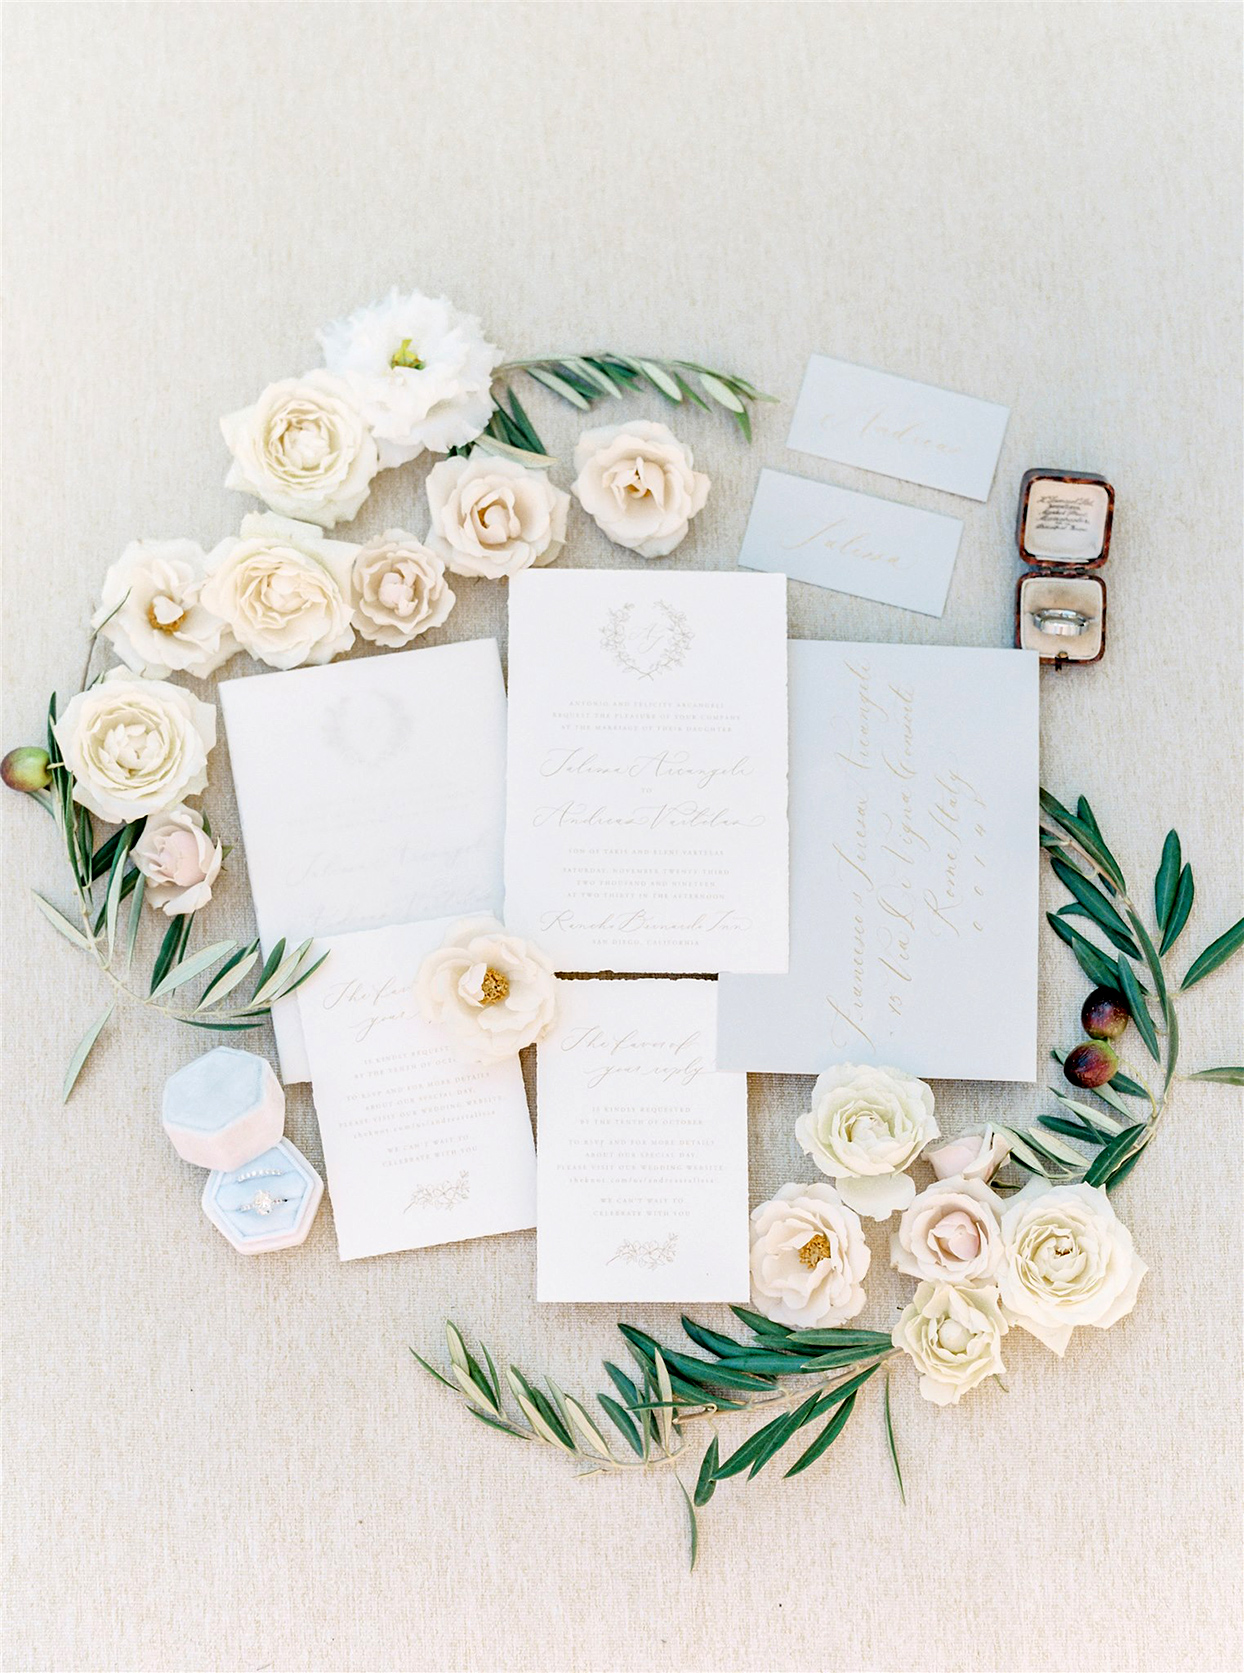 Invitation suite in ivory, gold, and gray